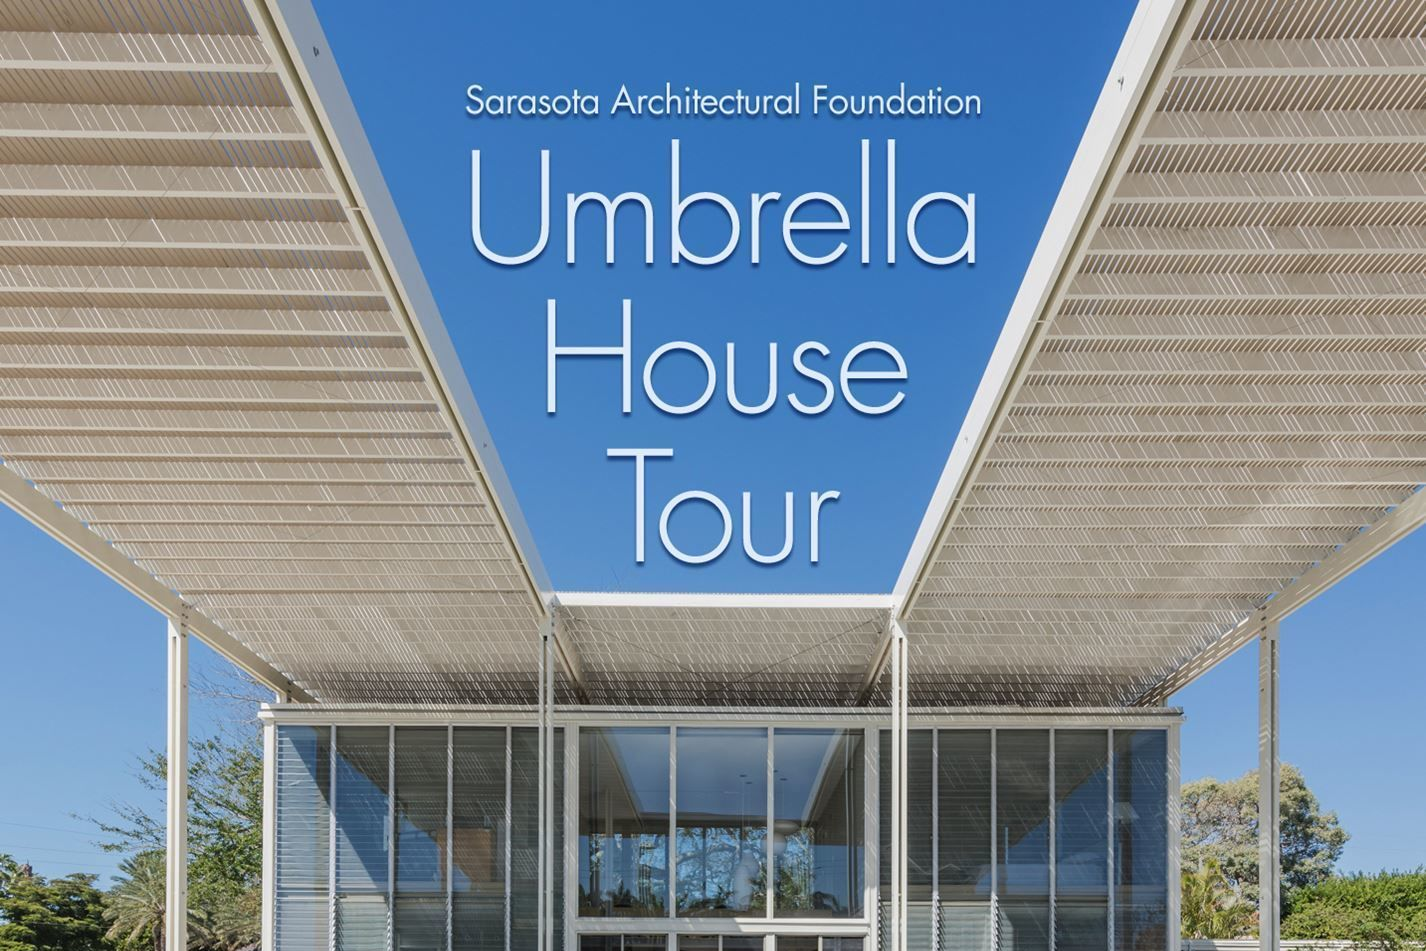 Umbrella house tours photo anton grassl esto g64gxx